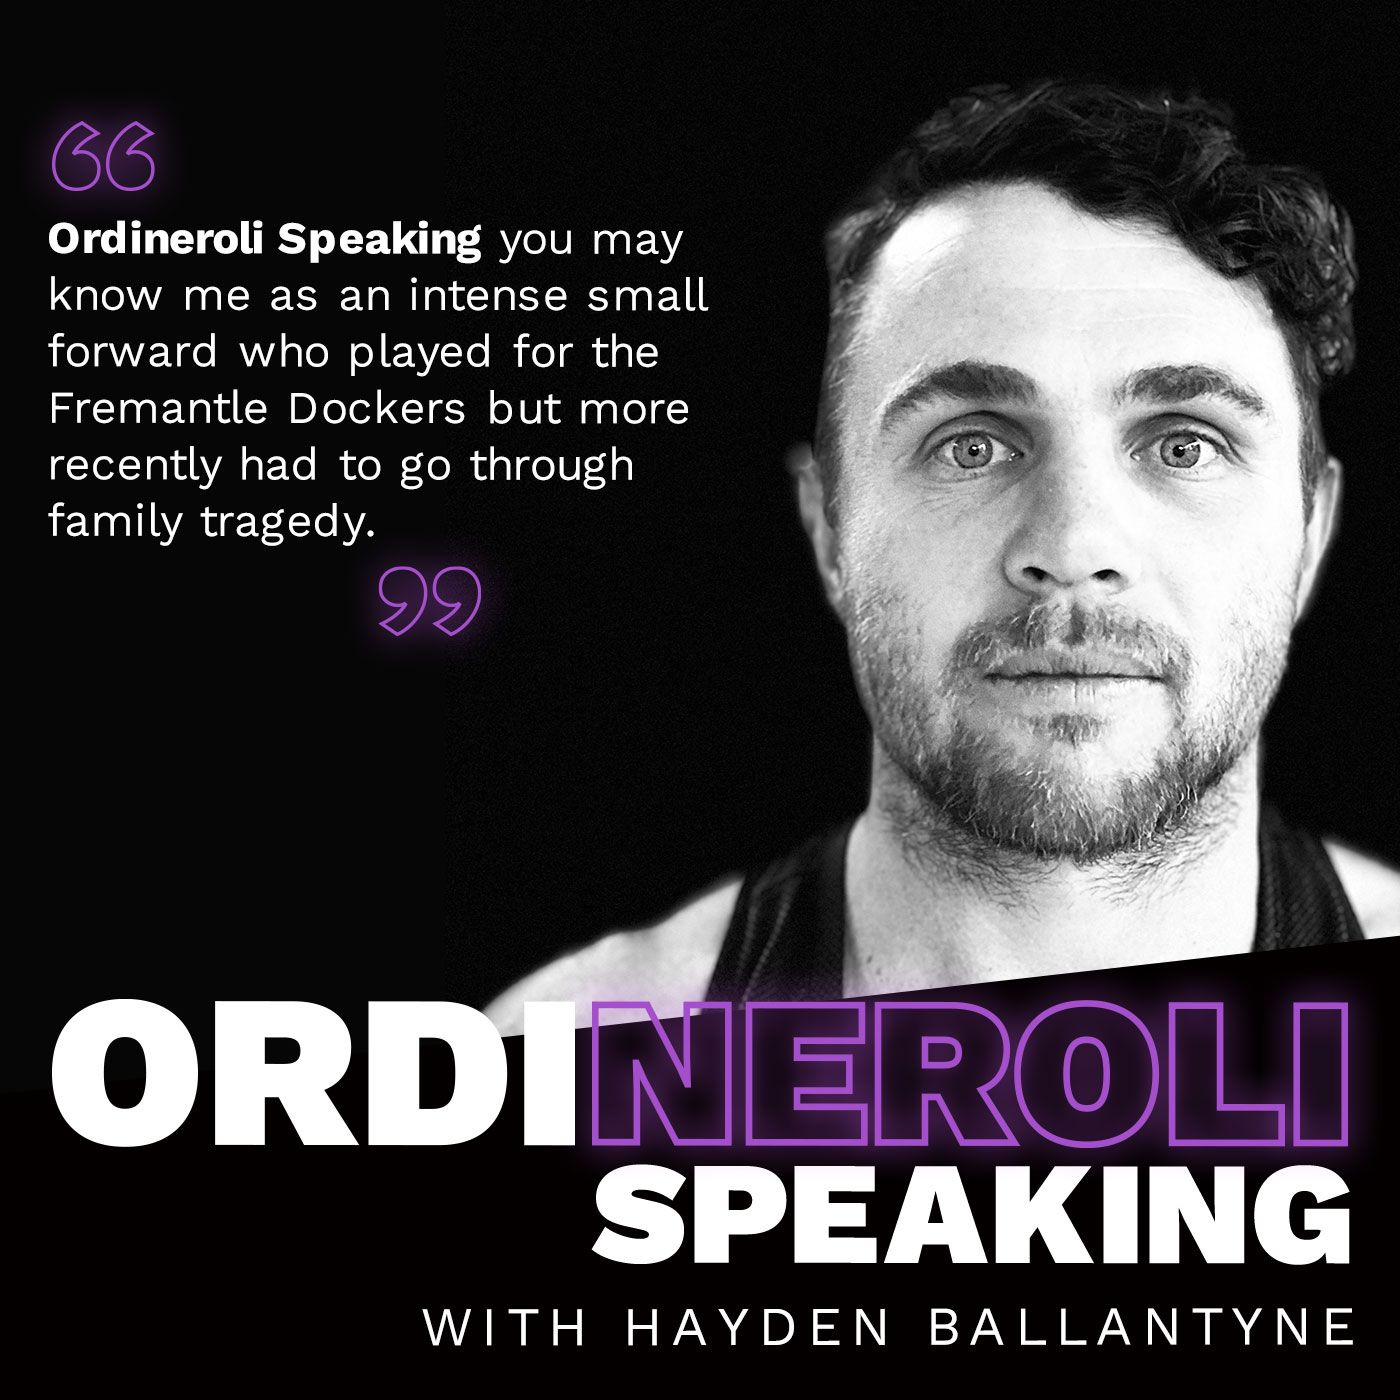 Hayden Ballantyne - Ordineroli Speaking